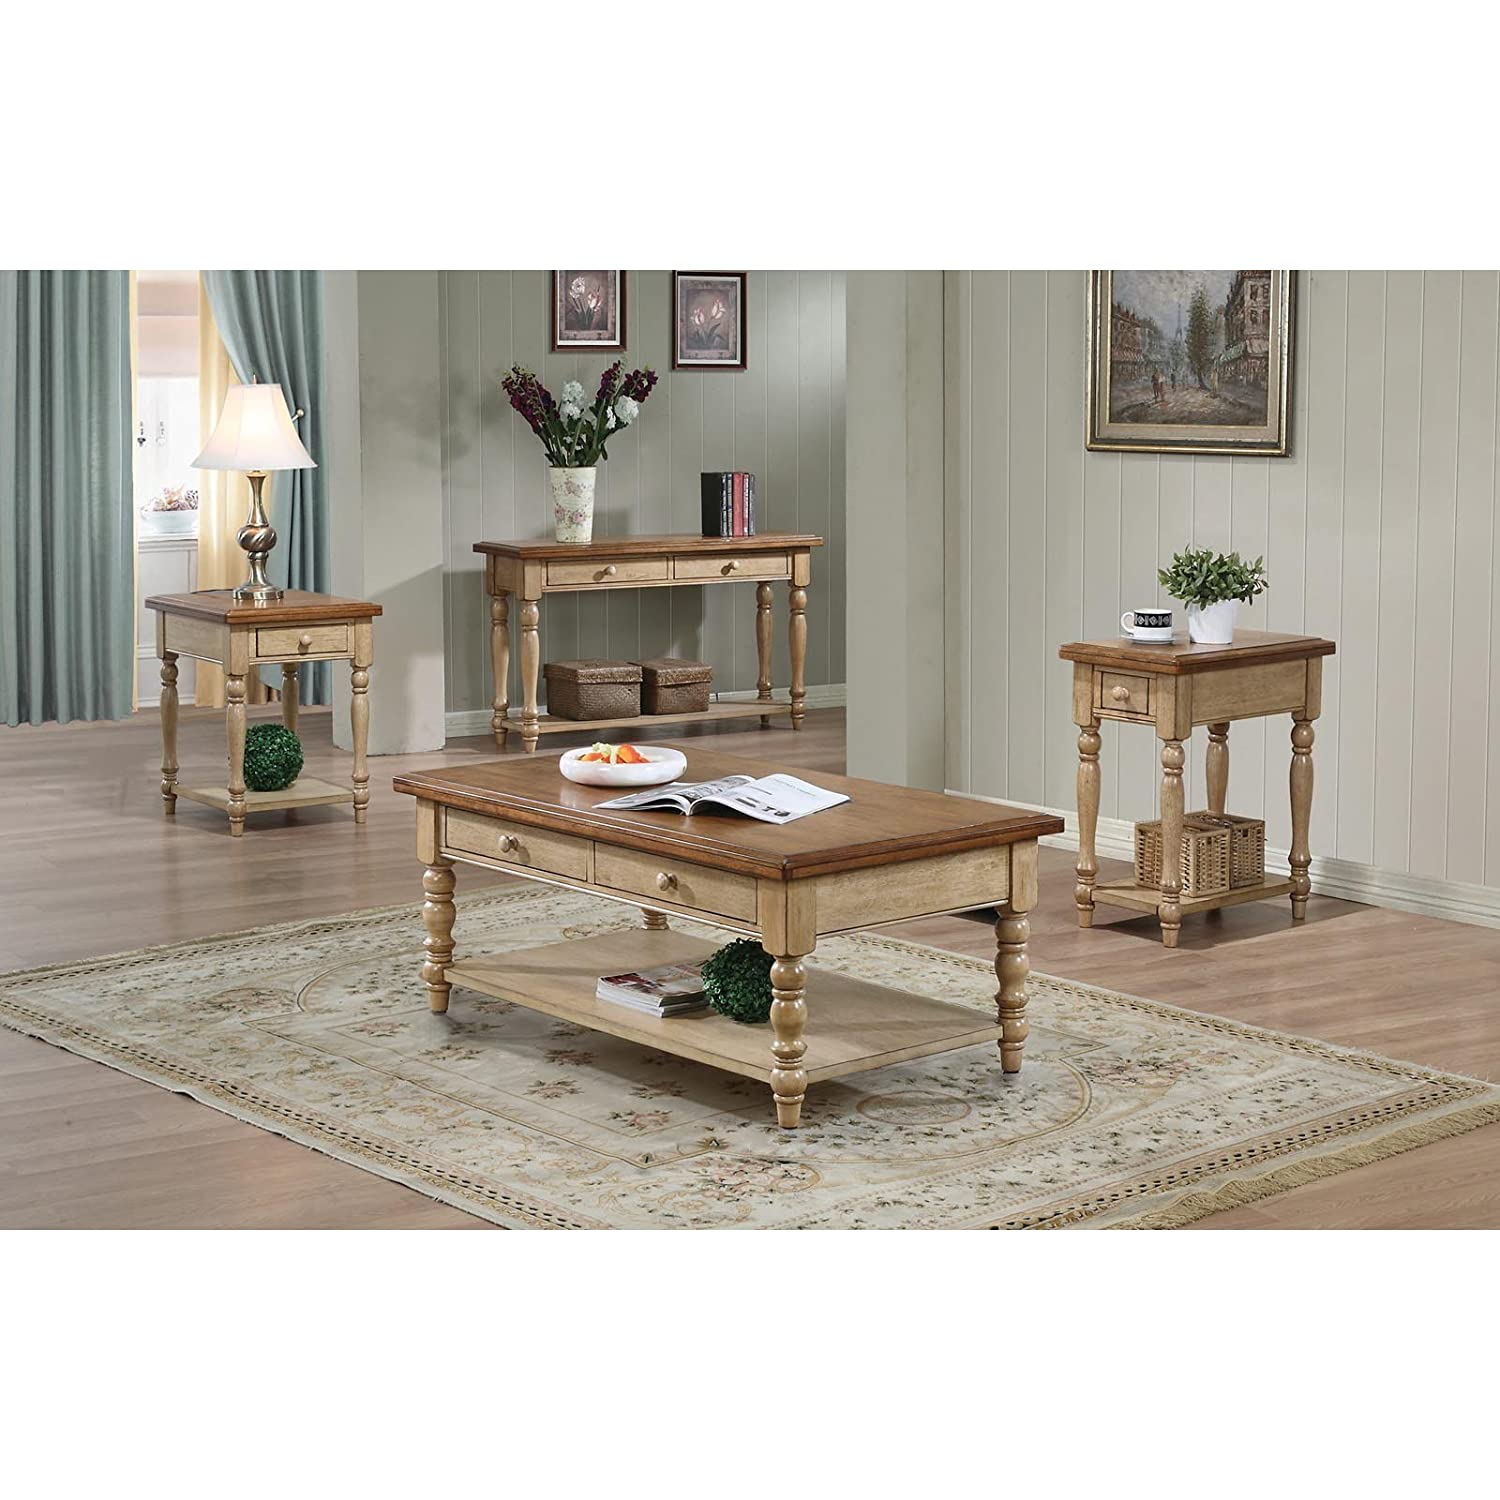 Amazon Quails Run Coffee Table in Ebony Finish Kitchen & Dining